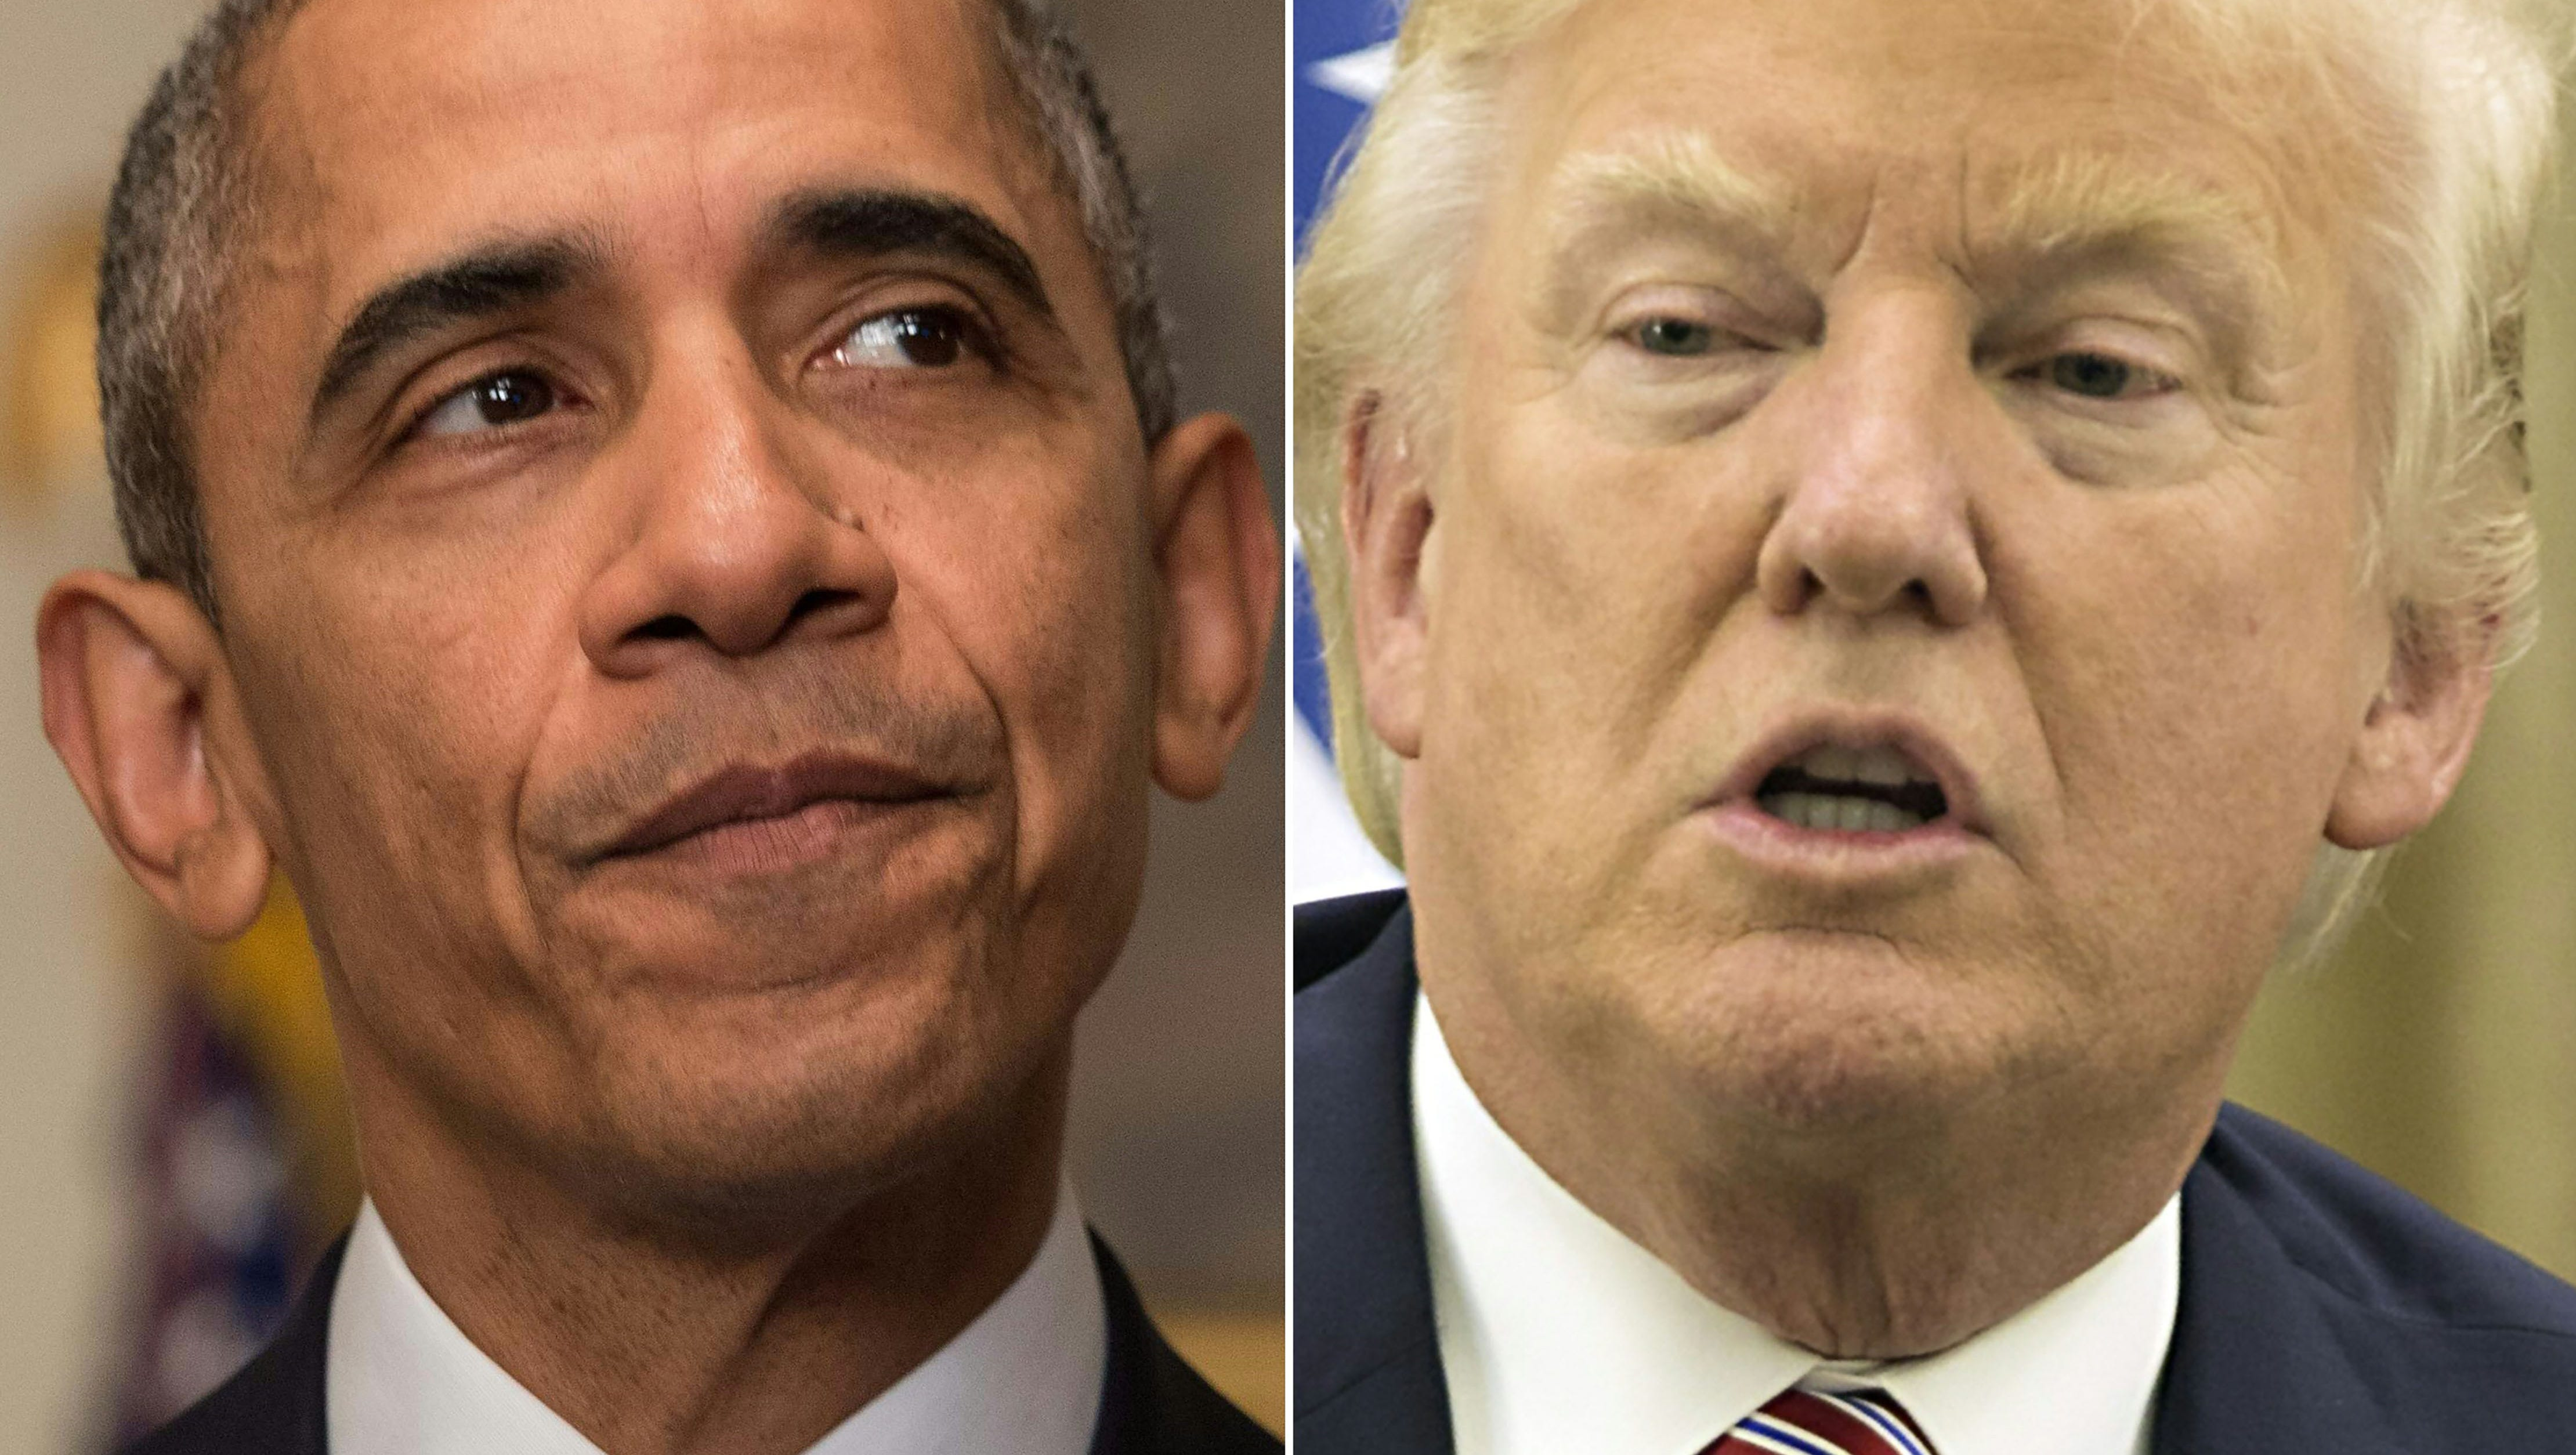 Former president Barack Obama and President Donald Trump have both been very effective at reaching Americans through Twitter.